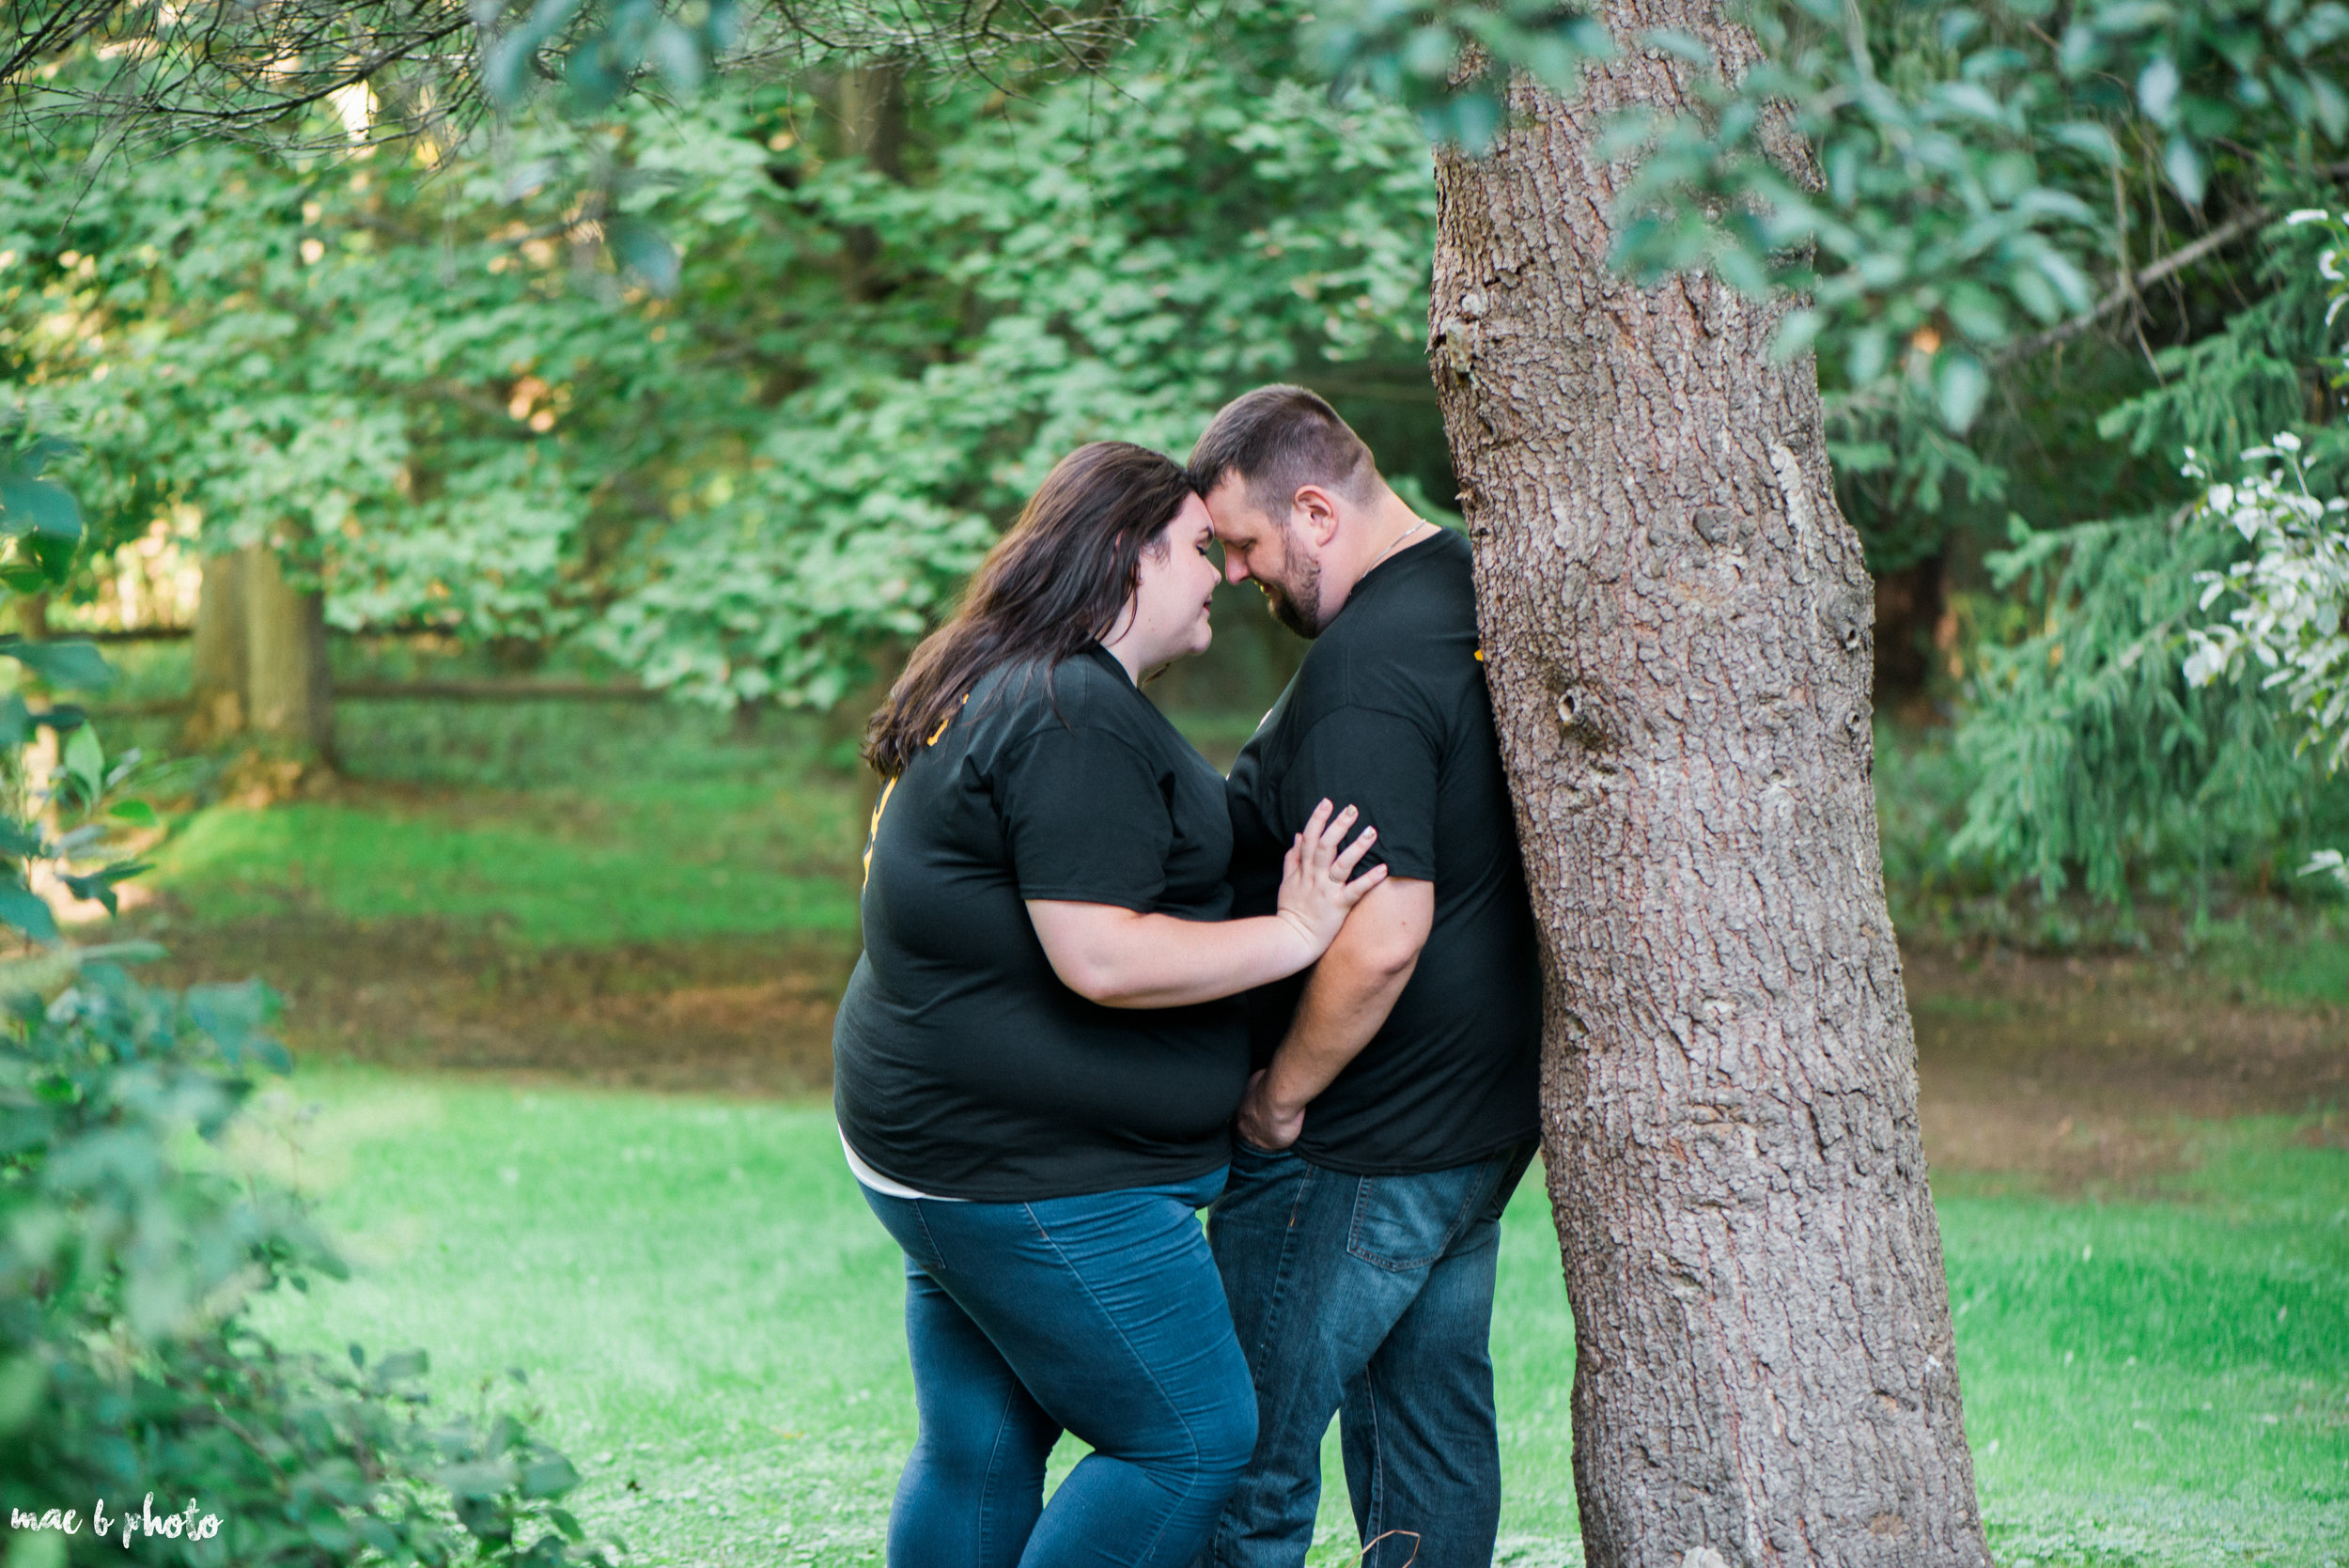 Kristina & Ryan's Summer Mill Creek Park Engagement Session in Youngstown, Ohio-30.jpg